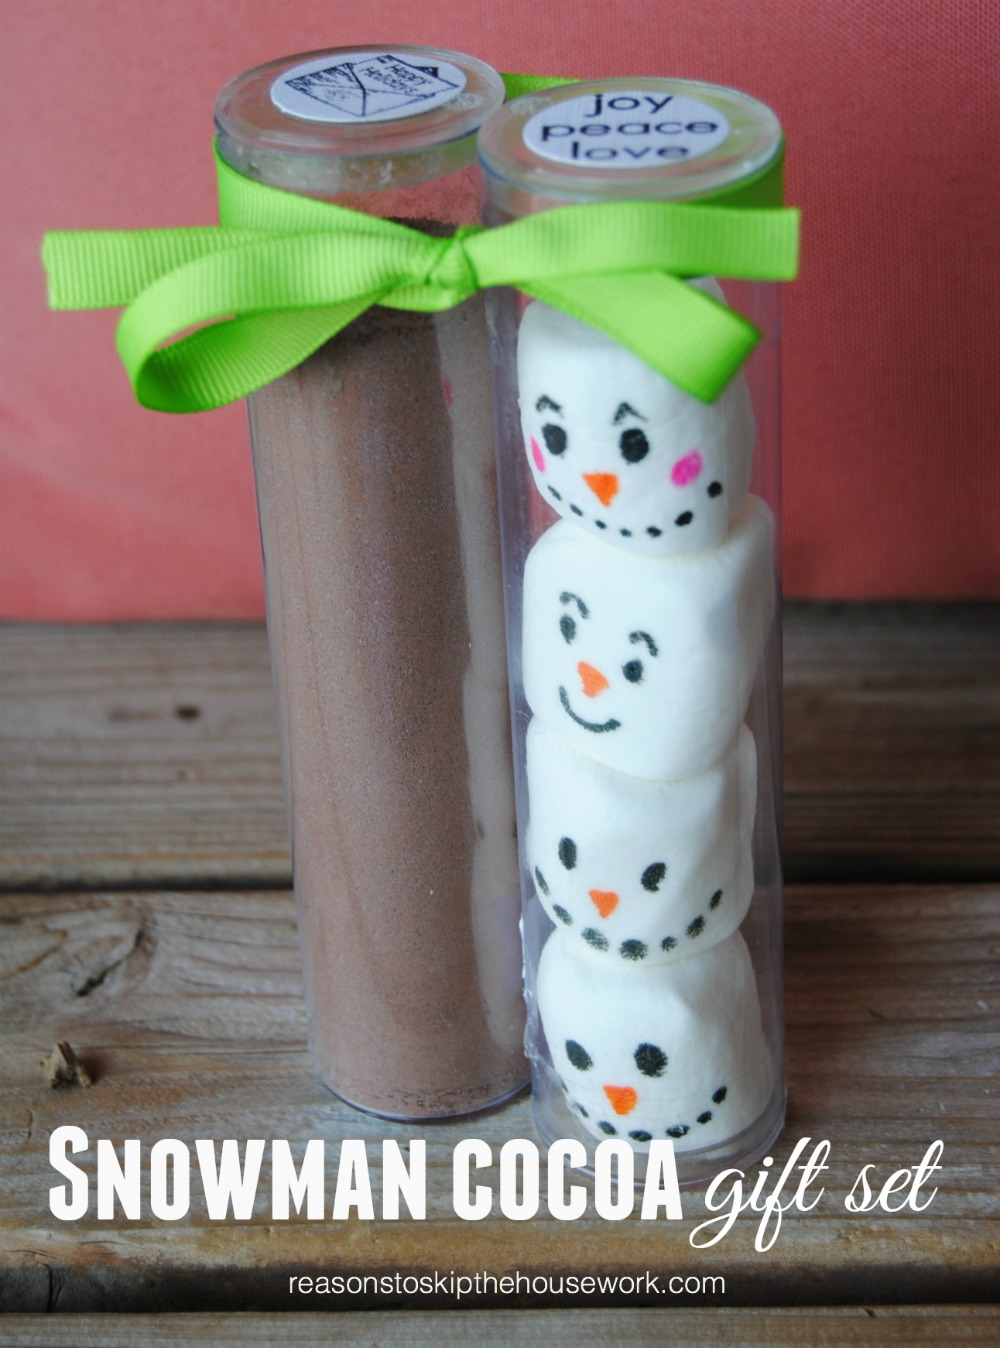 Snowman Cocoa Reasons To Skip The Housework